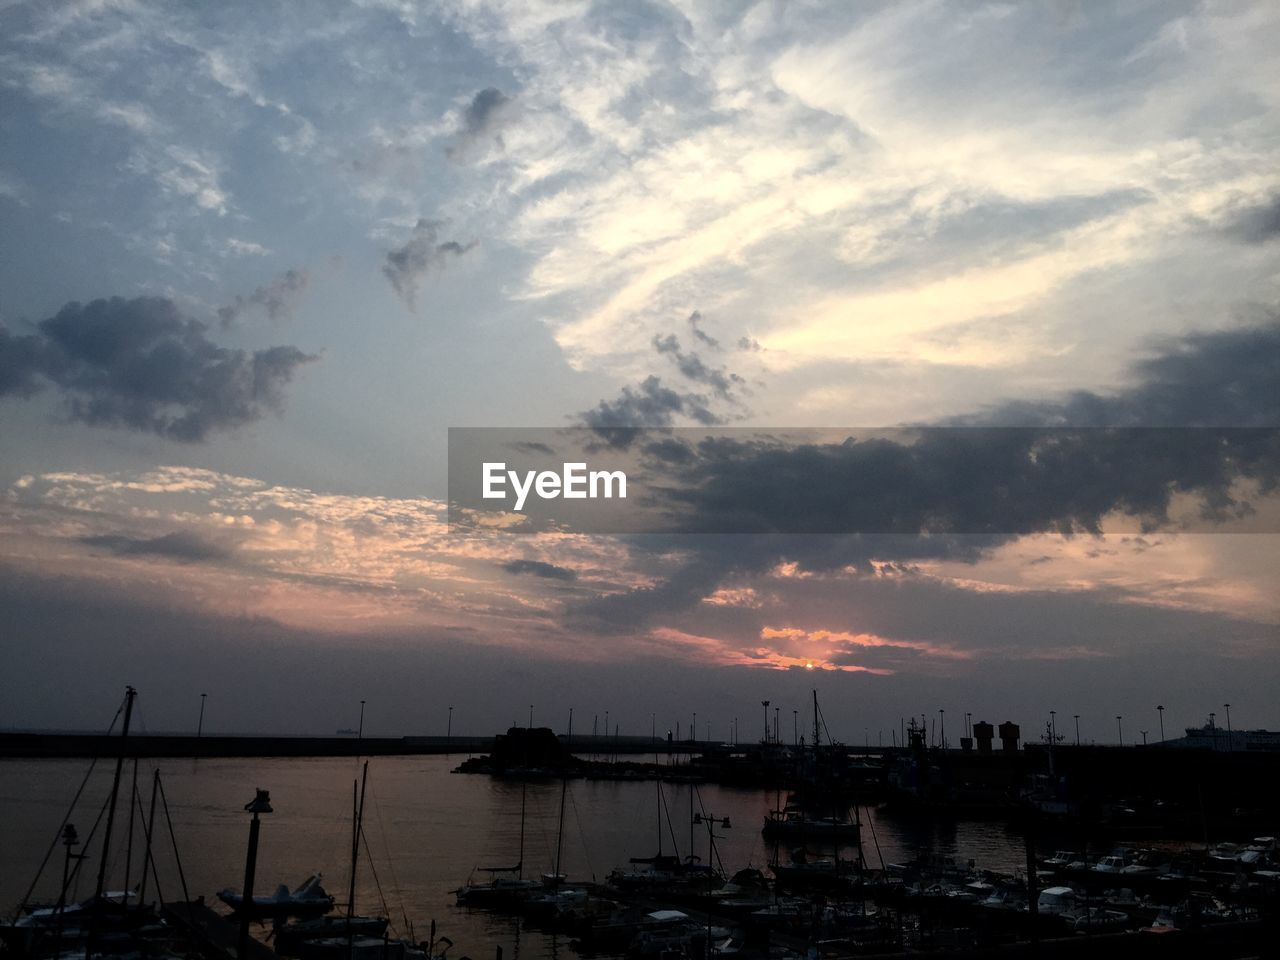 sunset, sky, cloud - sky, nautical vessel, silhouette, water, sea, no people, harbor, built structure, beauty in nature, building exterior, nature, scenics, outdoors, architecture, sailboat, moored, travel destinations, mast, city, horizon over water, yacht, cityscape, day